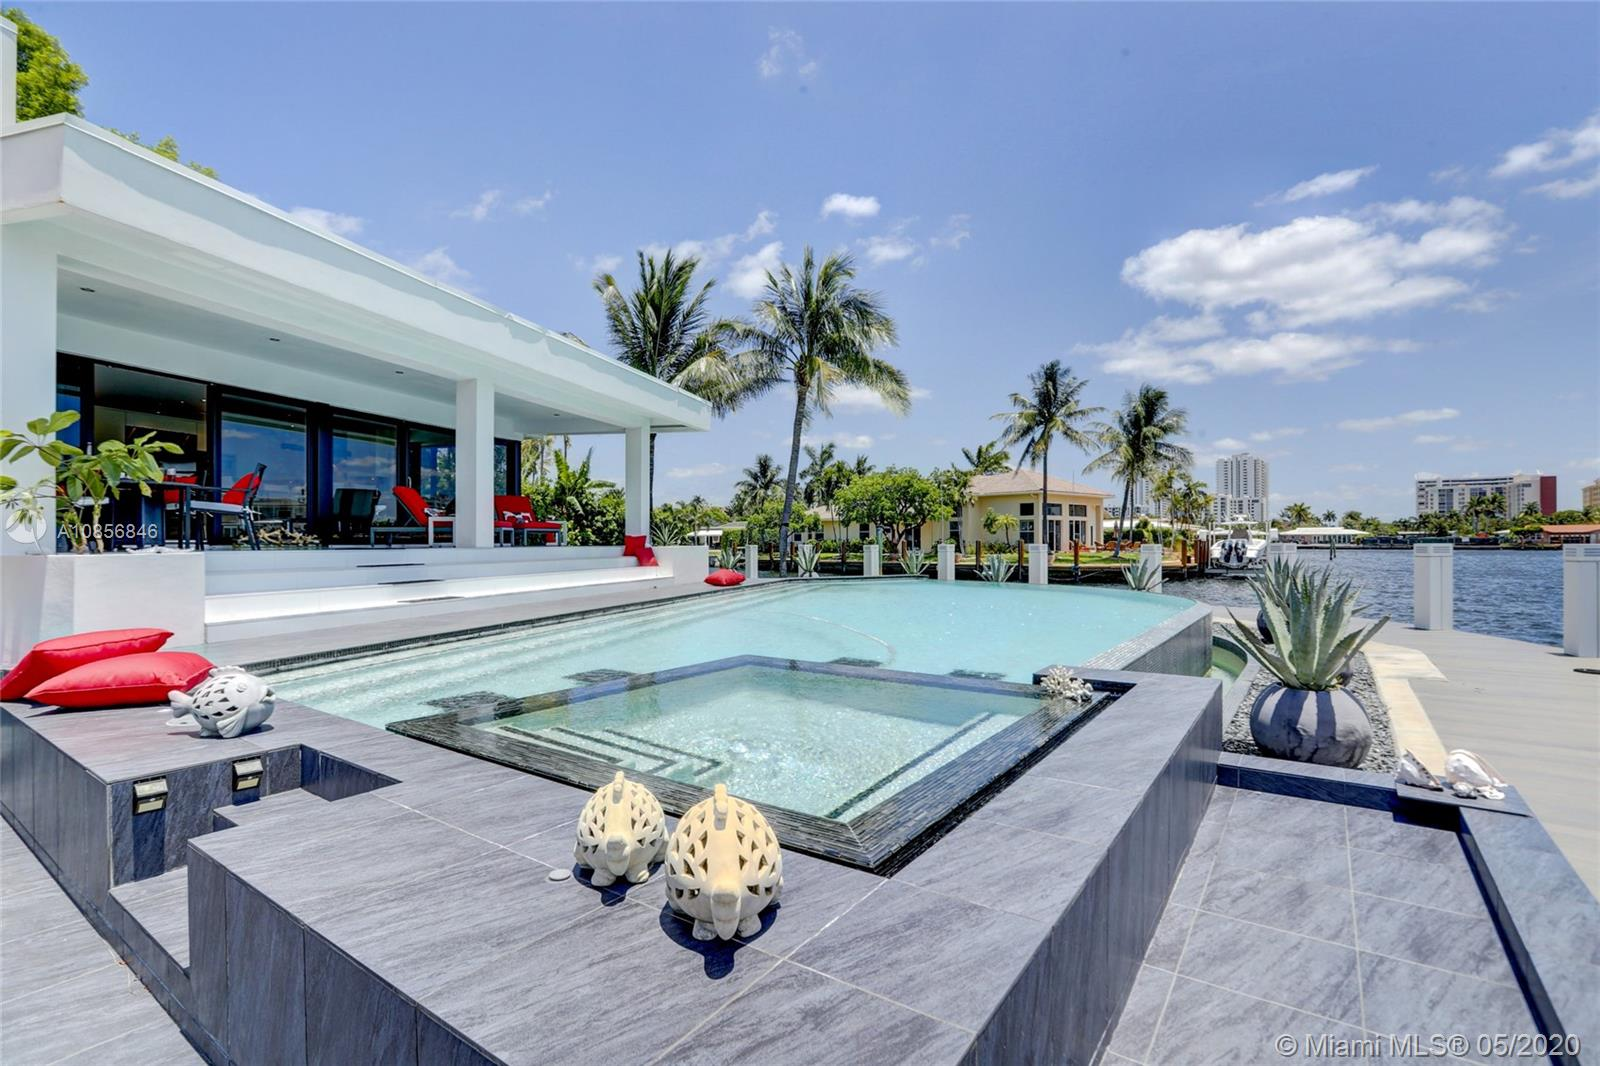 Hidden gem in Pompano Isles with breathtaking views on the Intracoastal and intersecting canals. As soon as you walk in, you will see impressive water views from everywhere inside this beautiful modern house. This private & peaceful property features 190 feet of waterfront point lot with 180 feet of composite dock. This is the perfect boaters paradise. The master bedroom suite is upstairs with private balcony & the guest room is downstairs for more privacy. The kitchen, living and dining opens to a large patio area great for poolside lounging & entertaining all year long. Infinity pool with salt chlorination system & spa for more pleasure. Conveniently located near the Hillsboro Inlet, no fixed bridges, ocean access, sun all day with pool facing East. This house is aboslutely perfect!